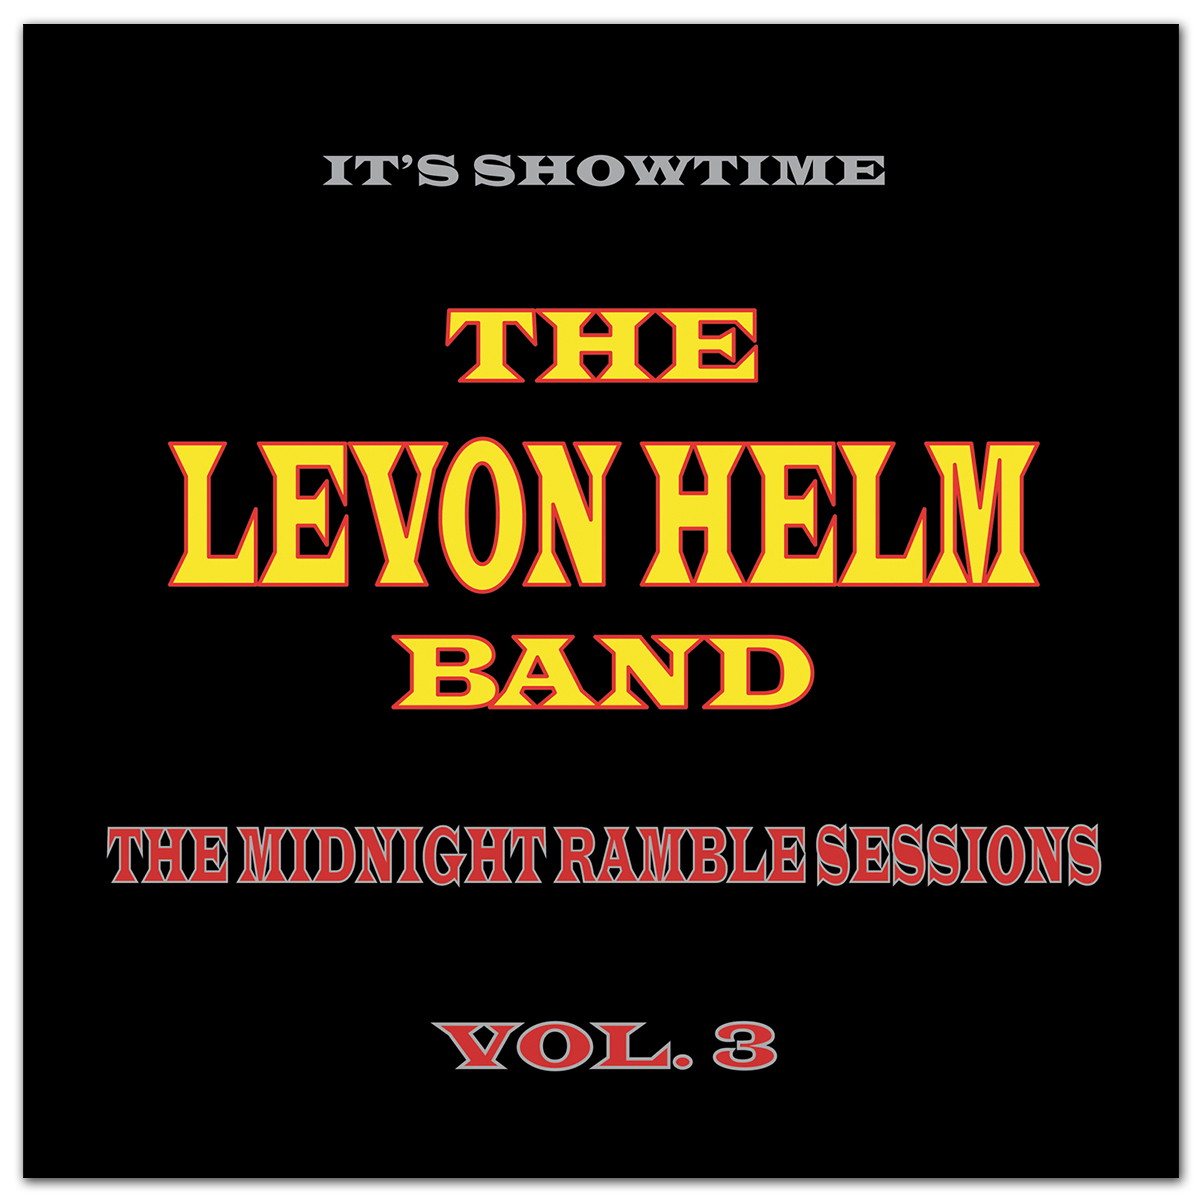 The Midnight Ramble Sessions, Vol. 3 CD